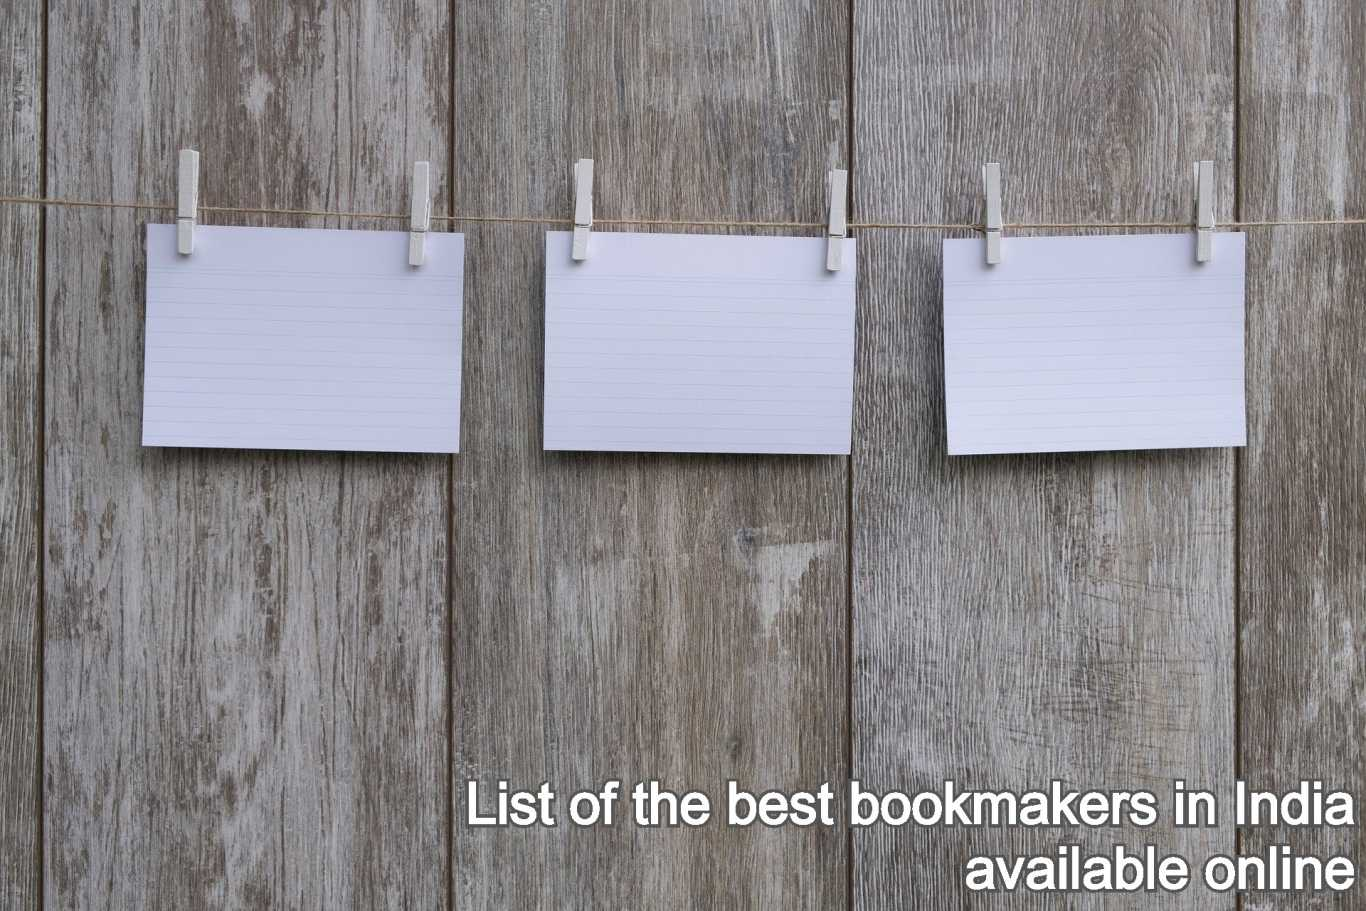 List of the best bookmakers in India available online